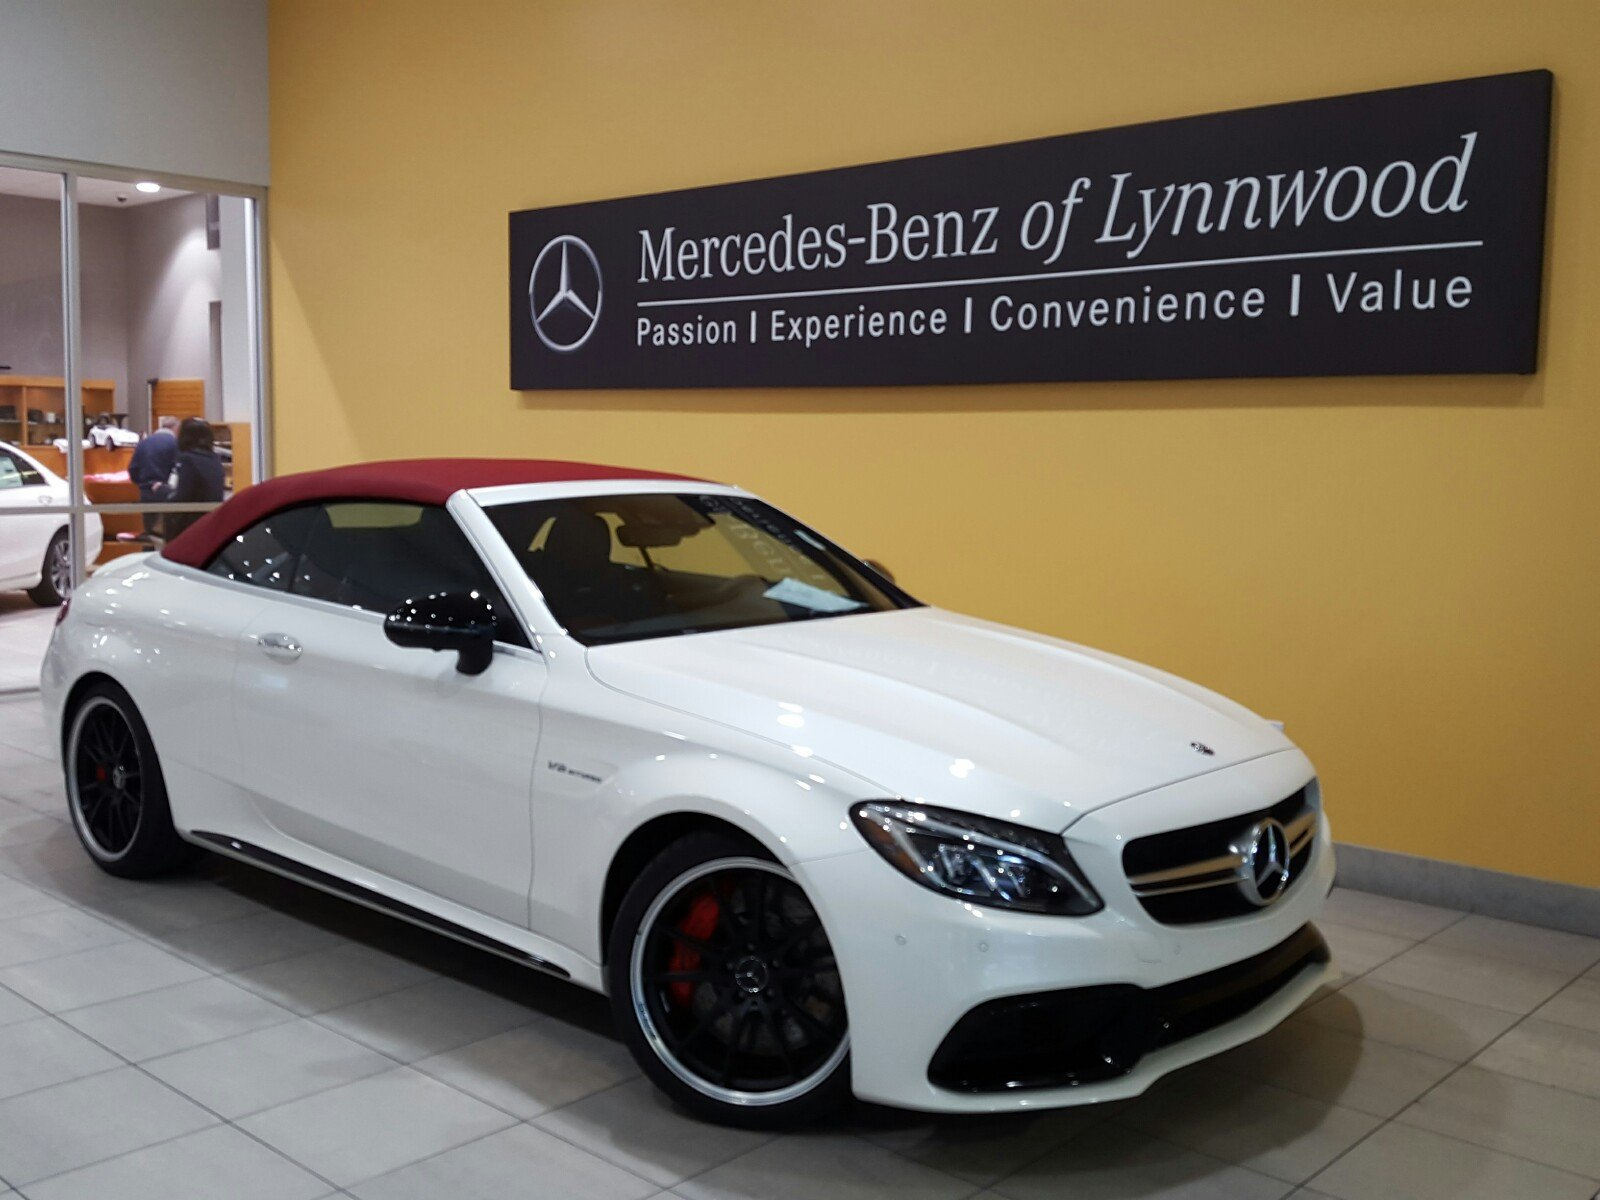 new 2018 mercedes benz c class amg c 63 s cabriolet convertible in lynnwood 28557 mercedes. Black Bedroom Furniture Sets. Home Design Ideas